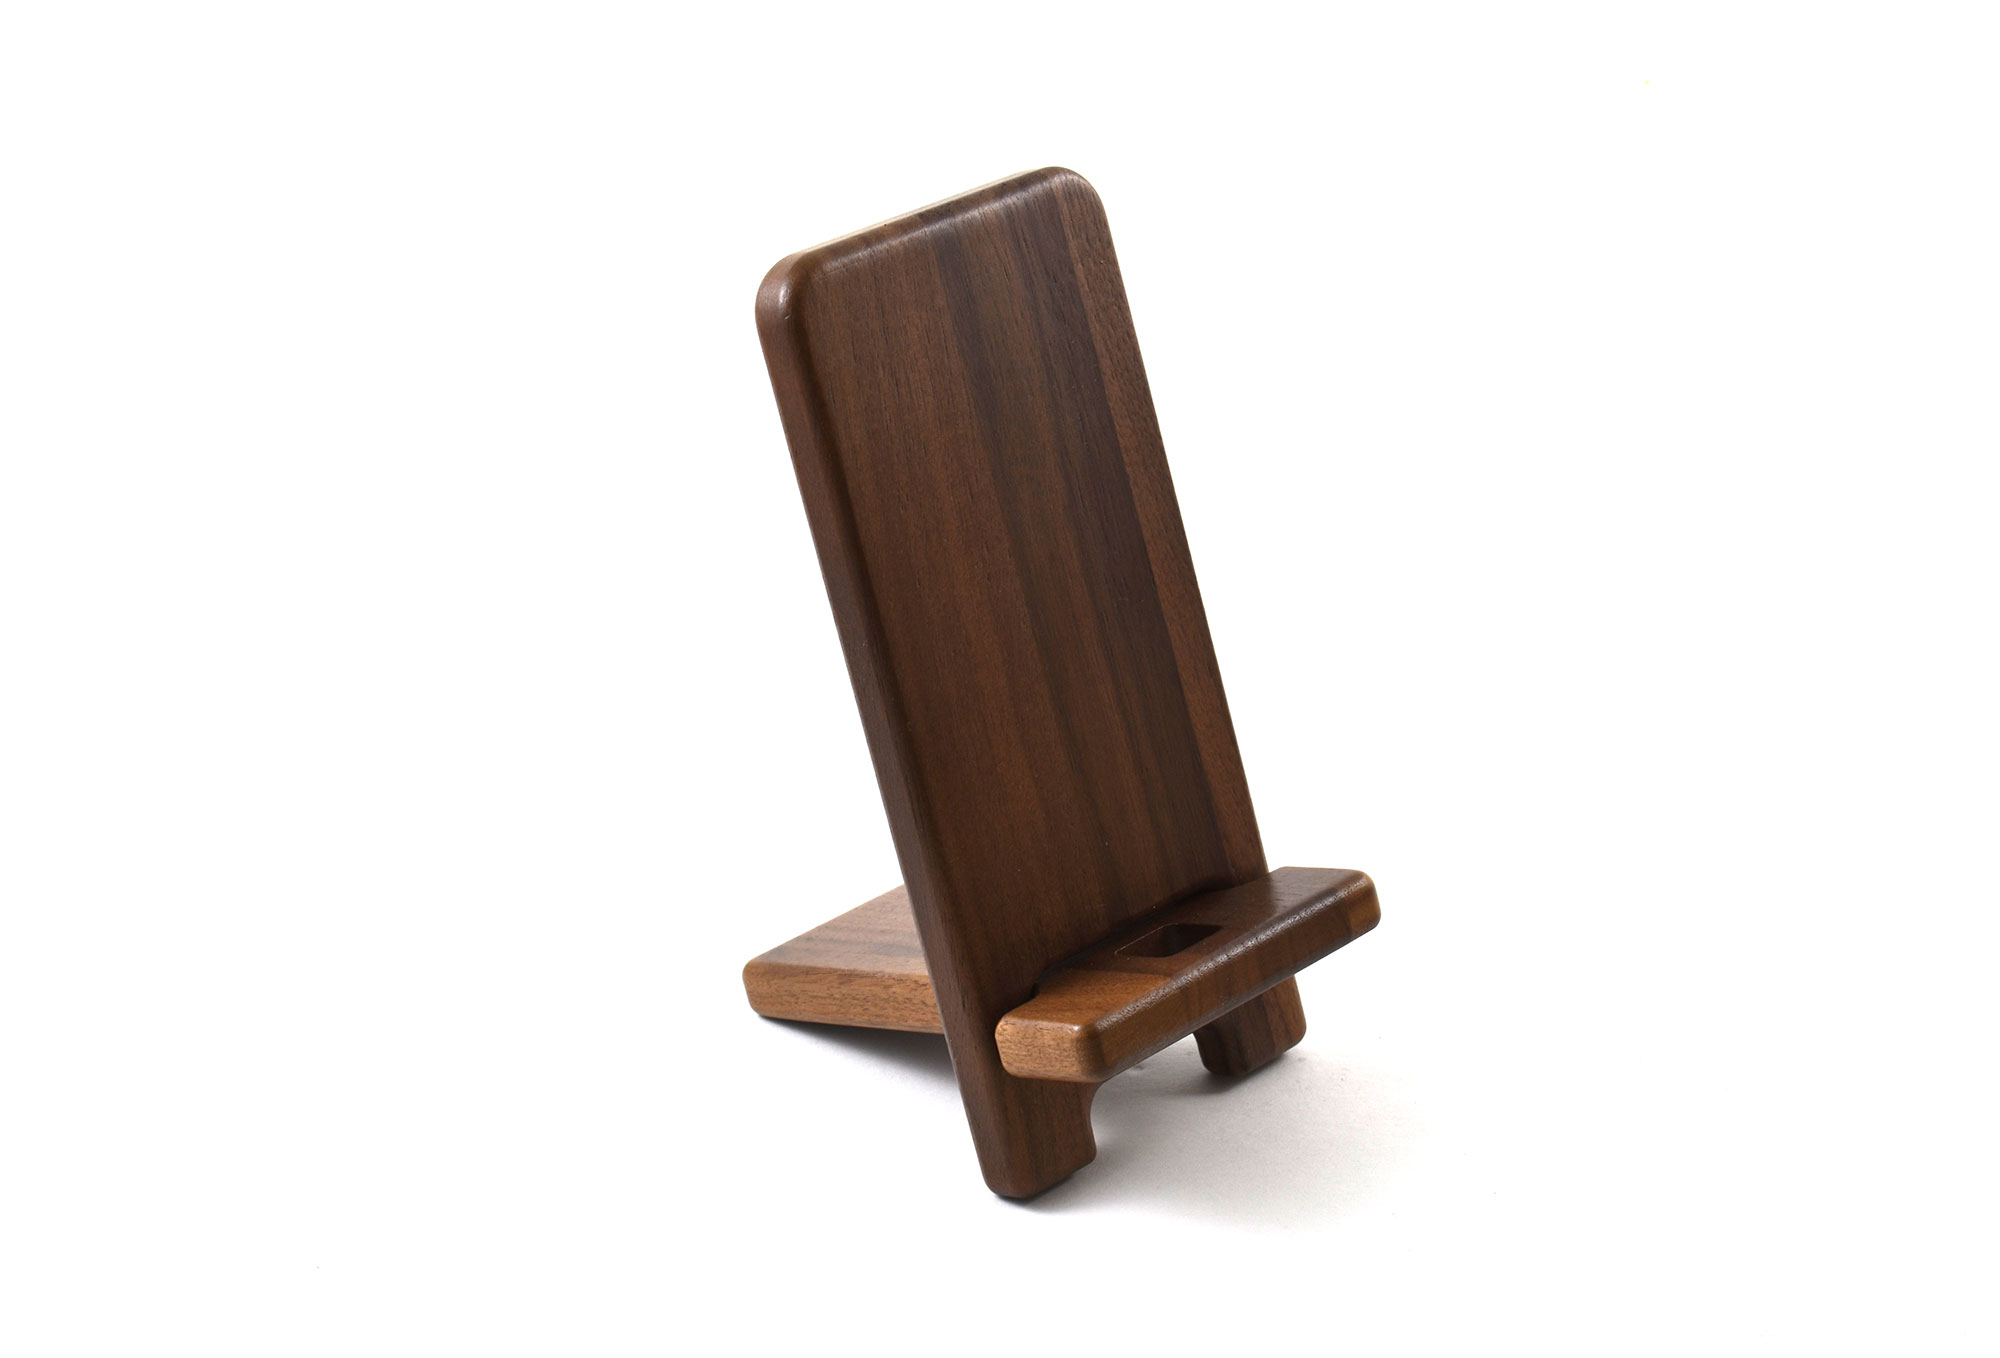 Walnut Mobile phone stand